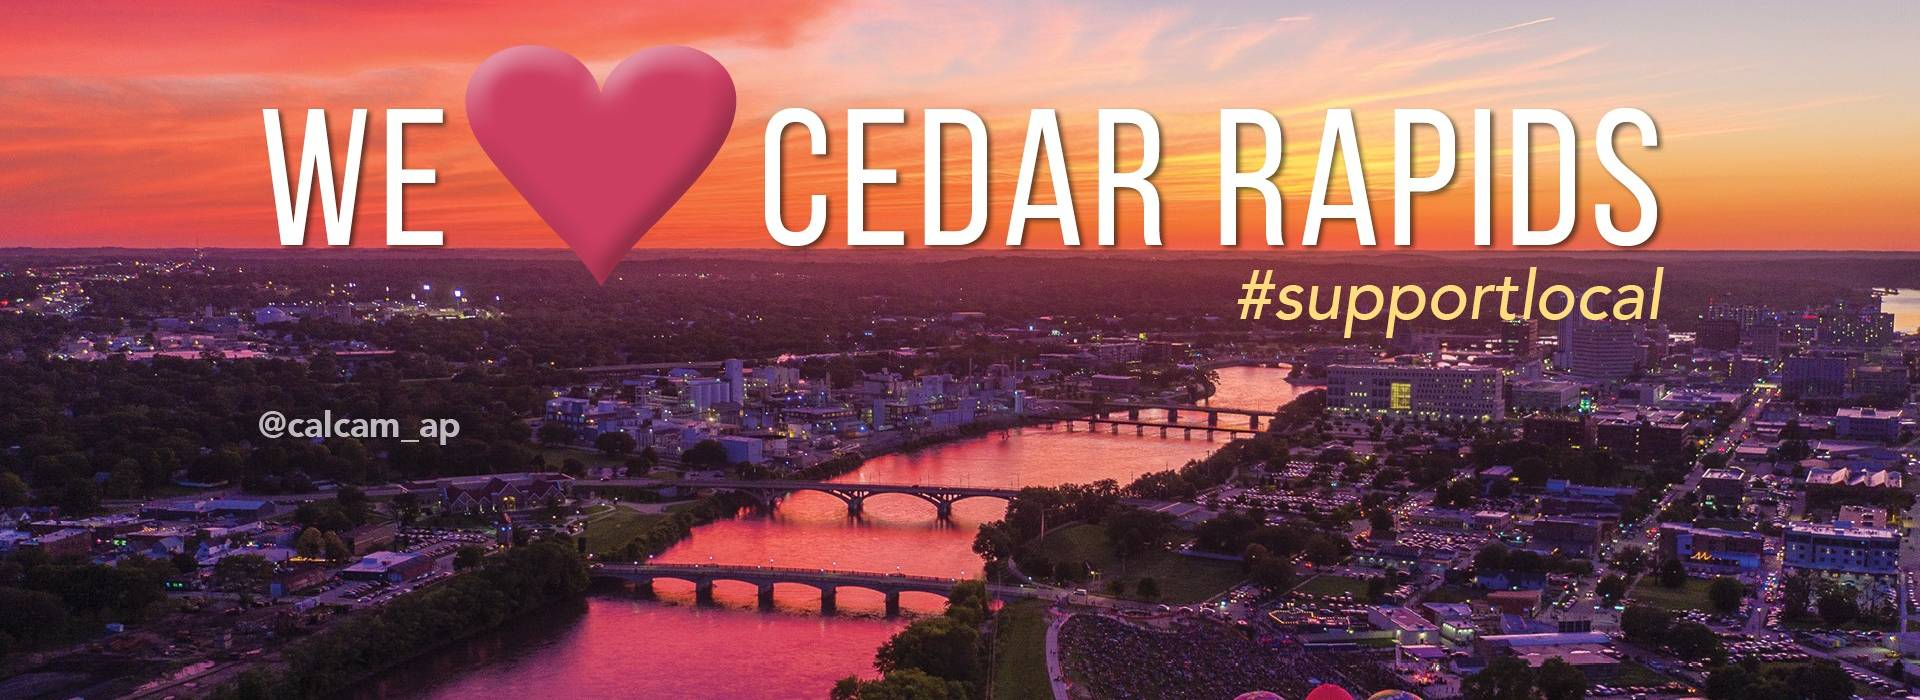 Support local businesses Cedar Rapids